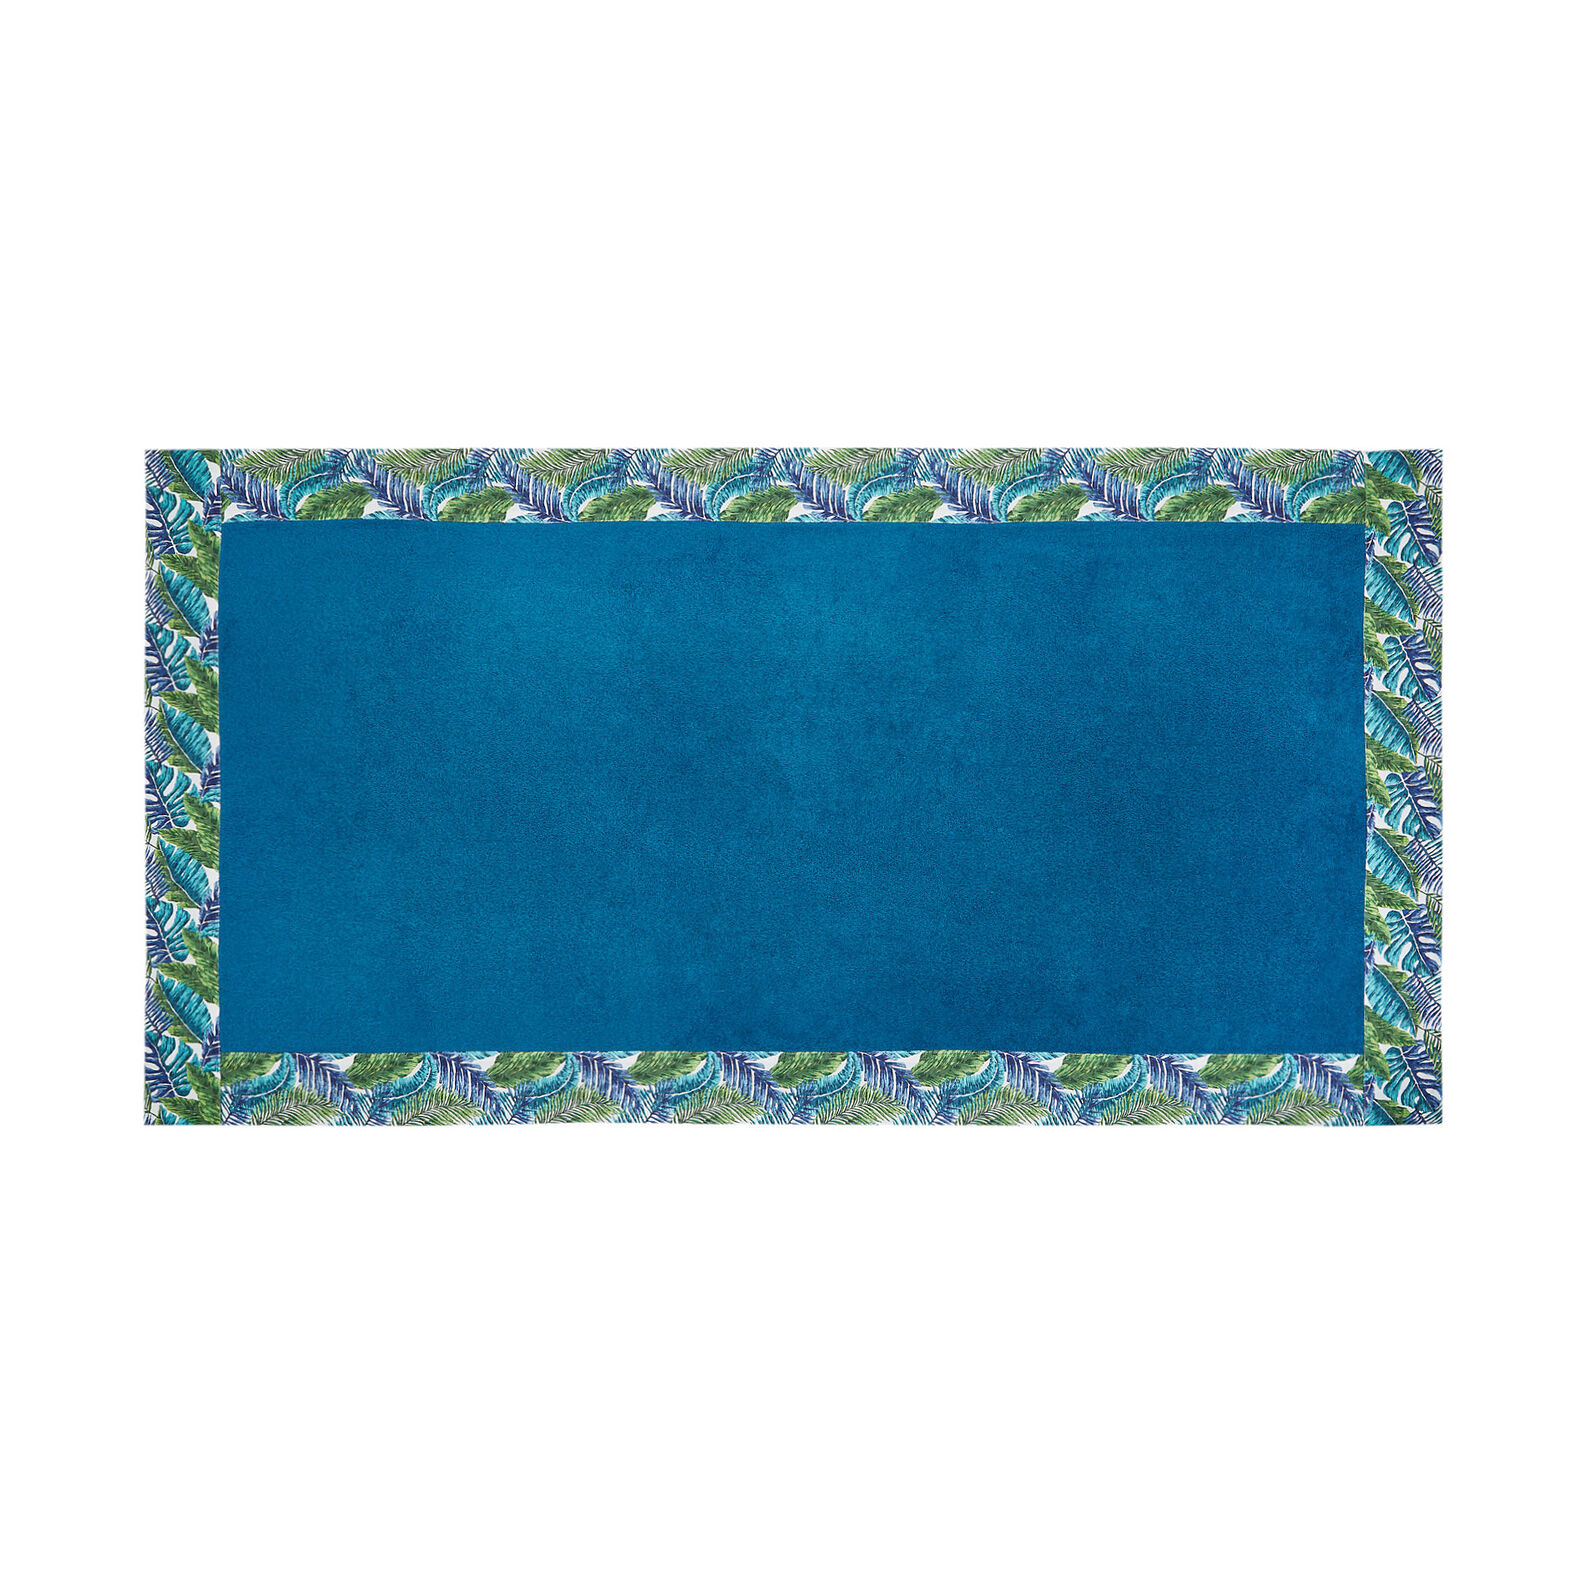 Cotton terry beach towel with patterned trim